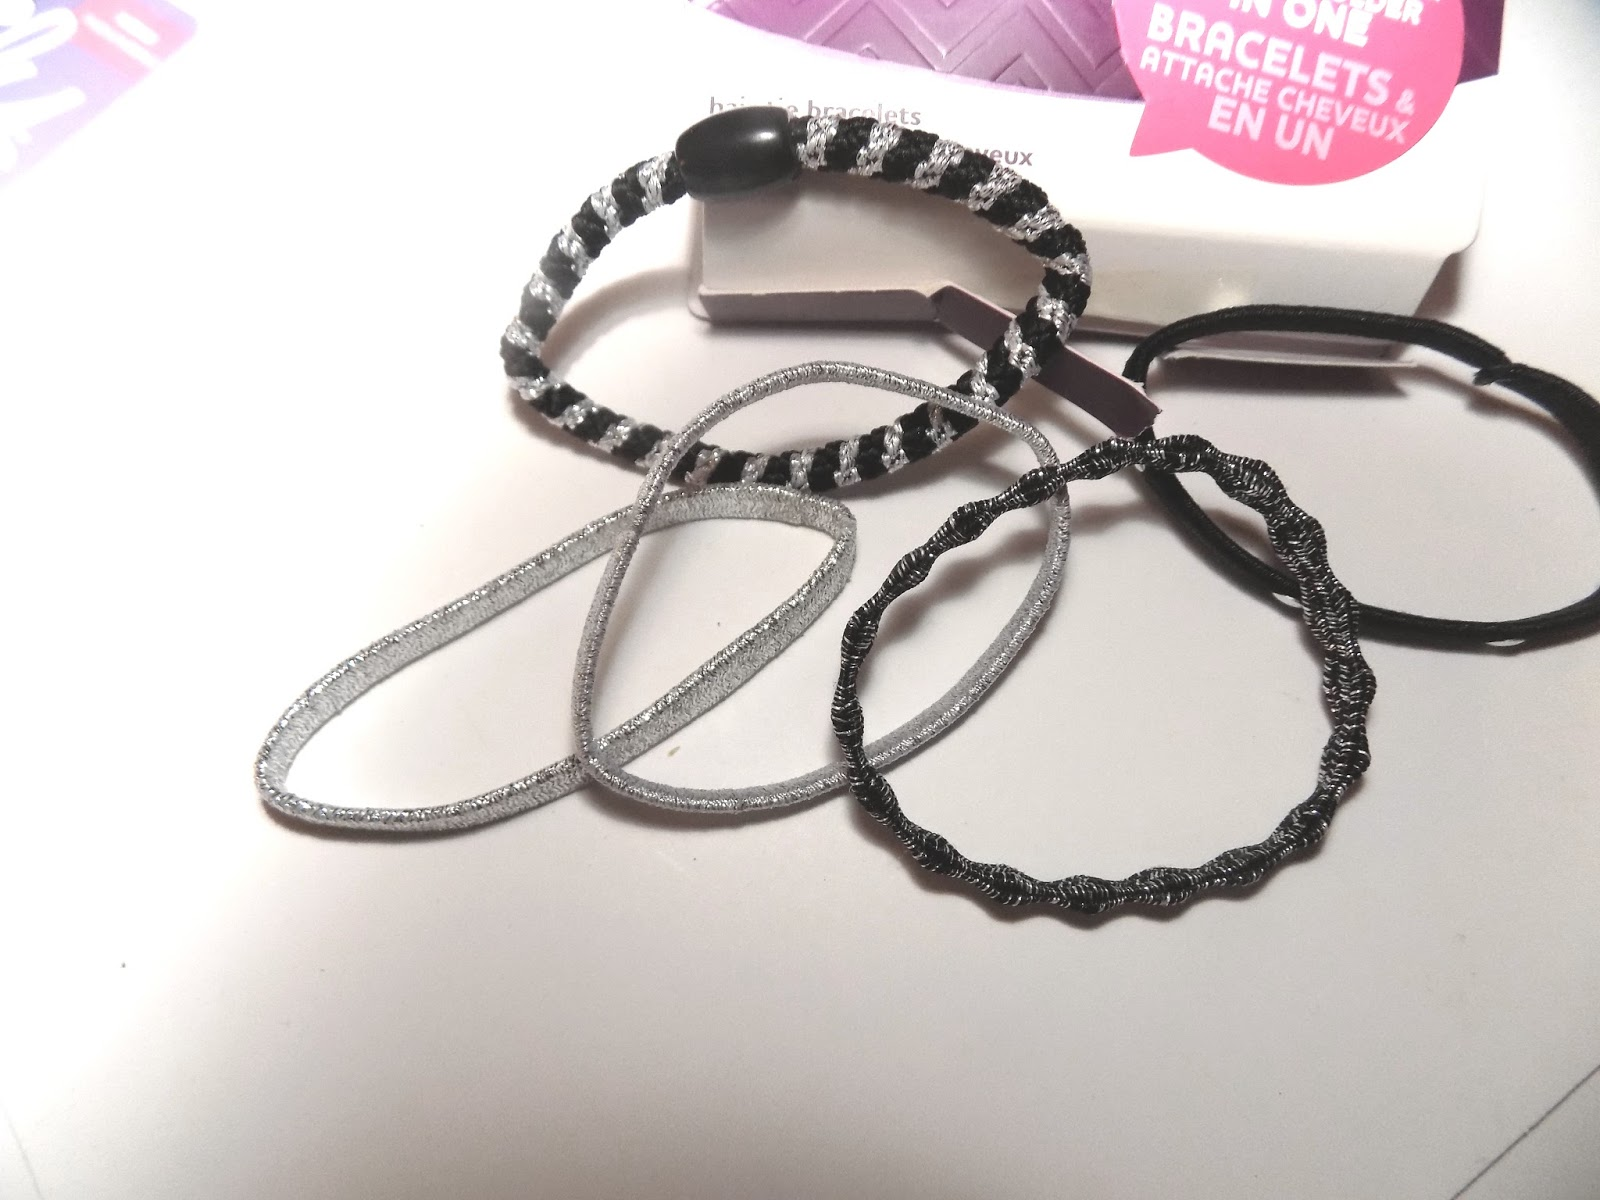 There is a wide range of new from the brand and a few of my favorites are  Bracelets and Hair Ties in One Set  64af37ea367